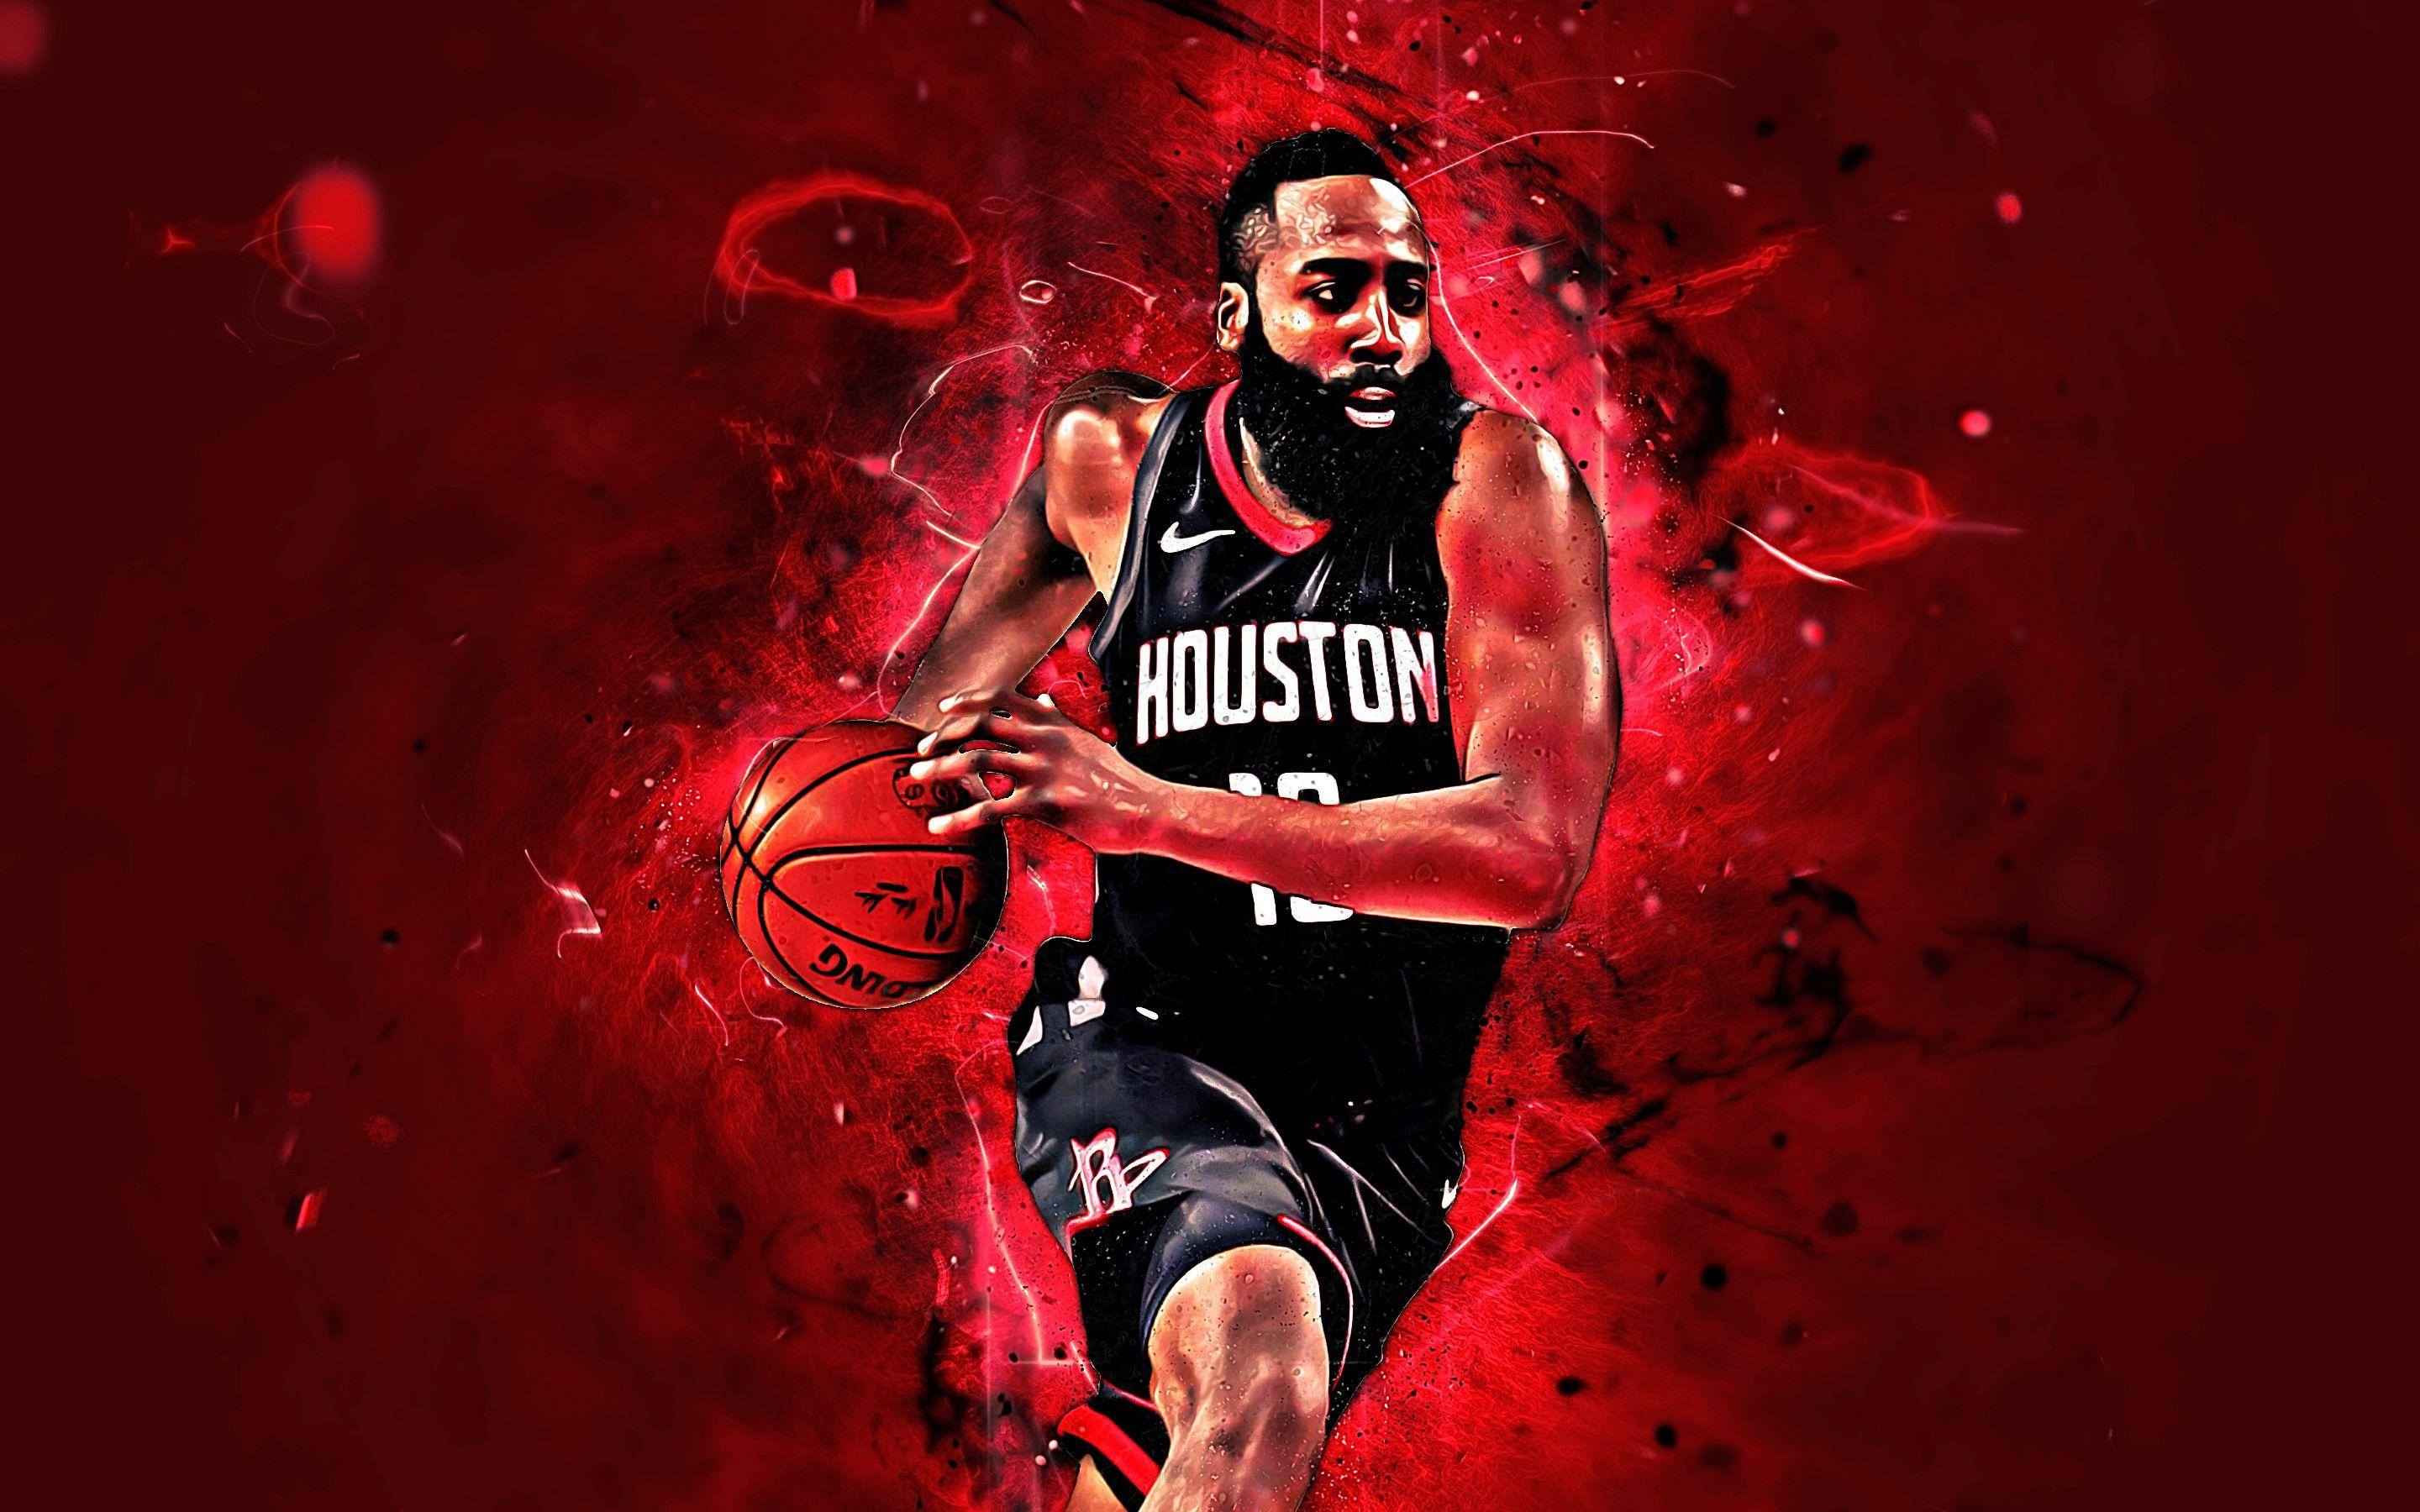 James Harden 2019 Wallpapers - Wallpaper Cave